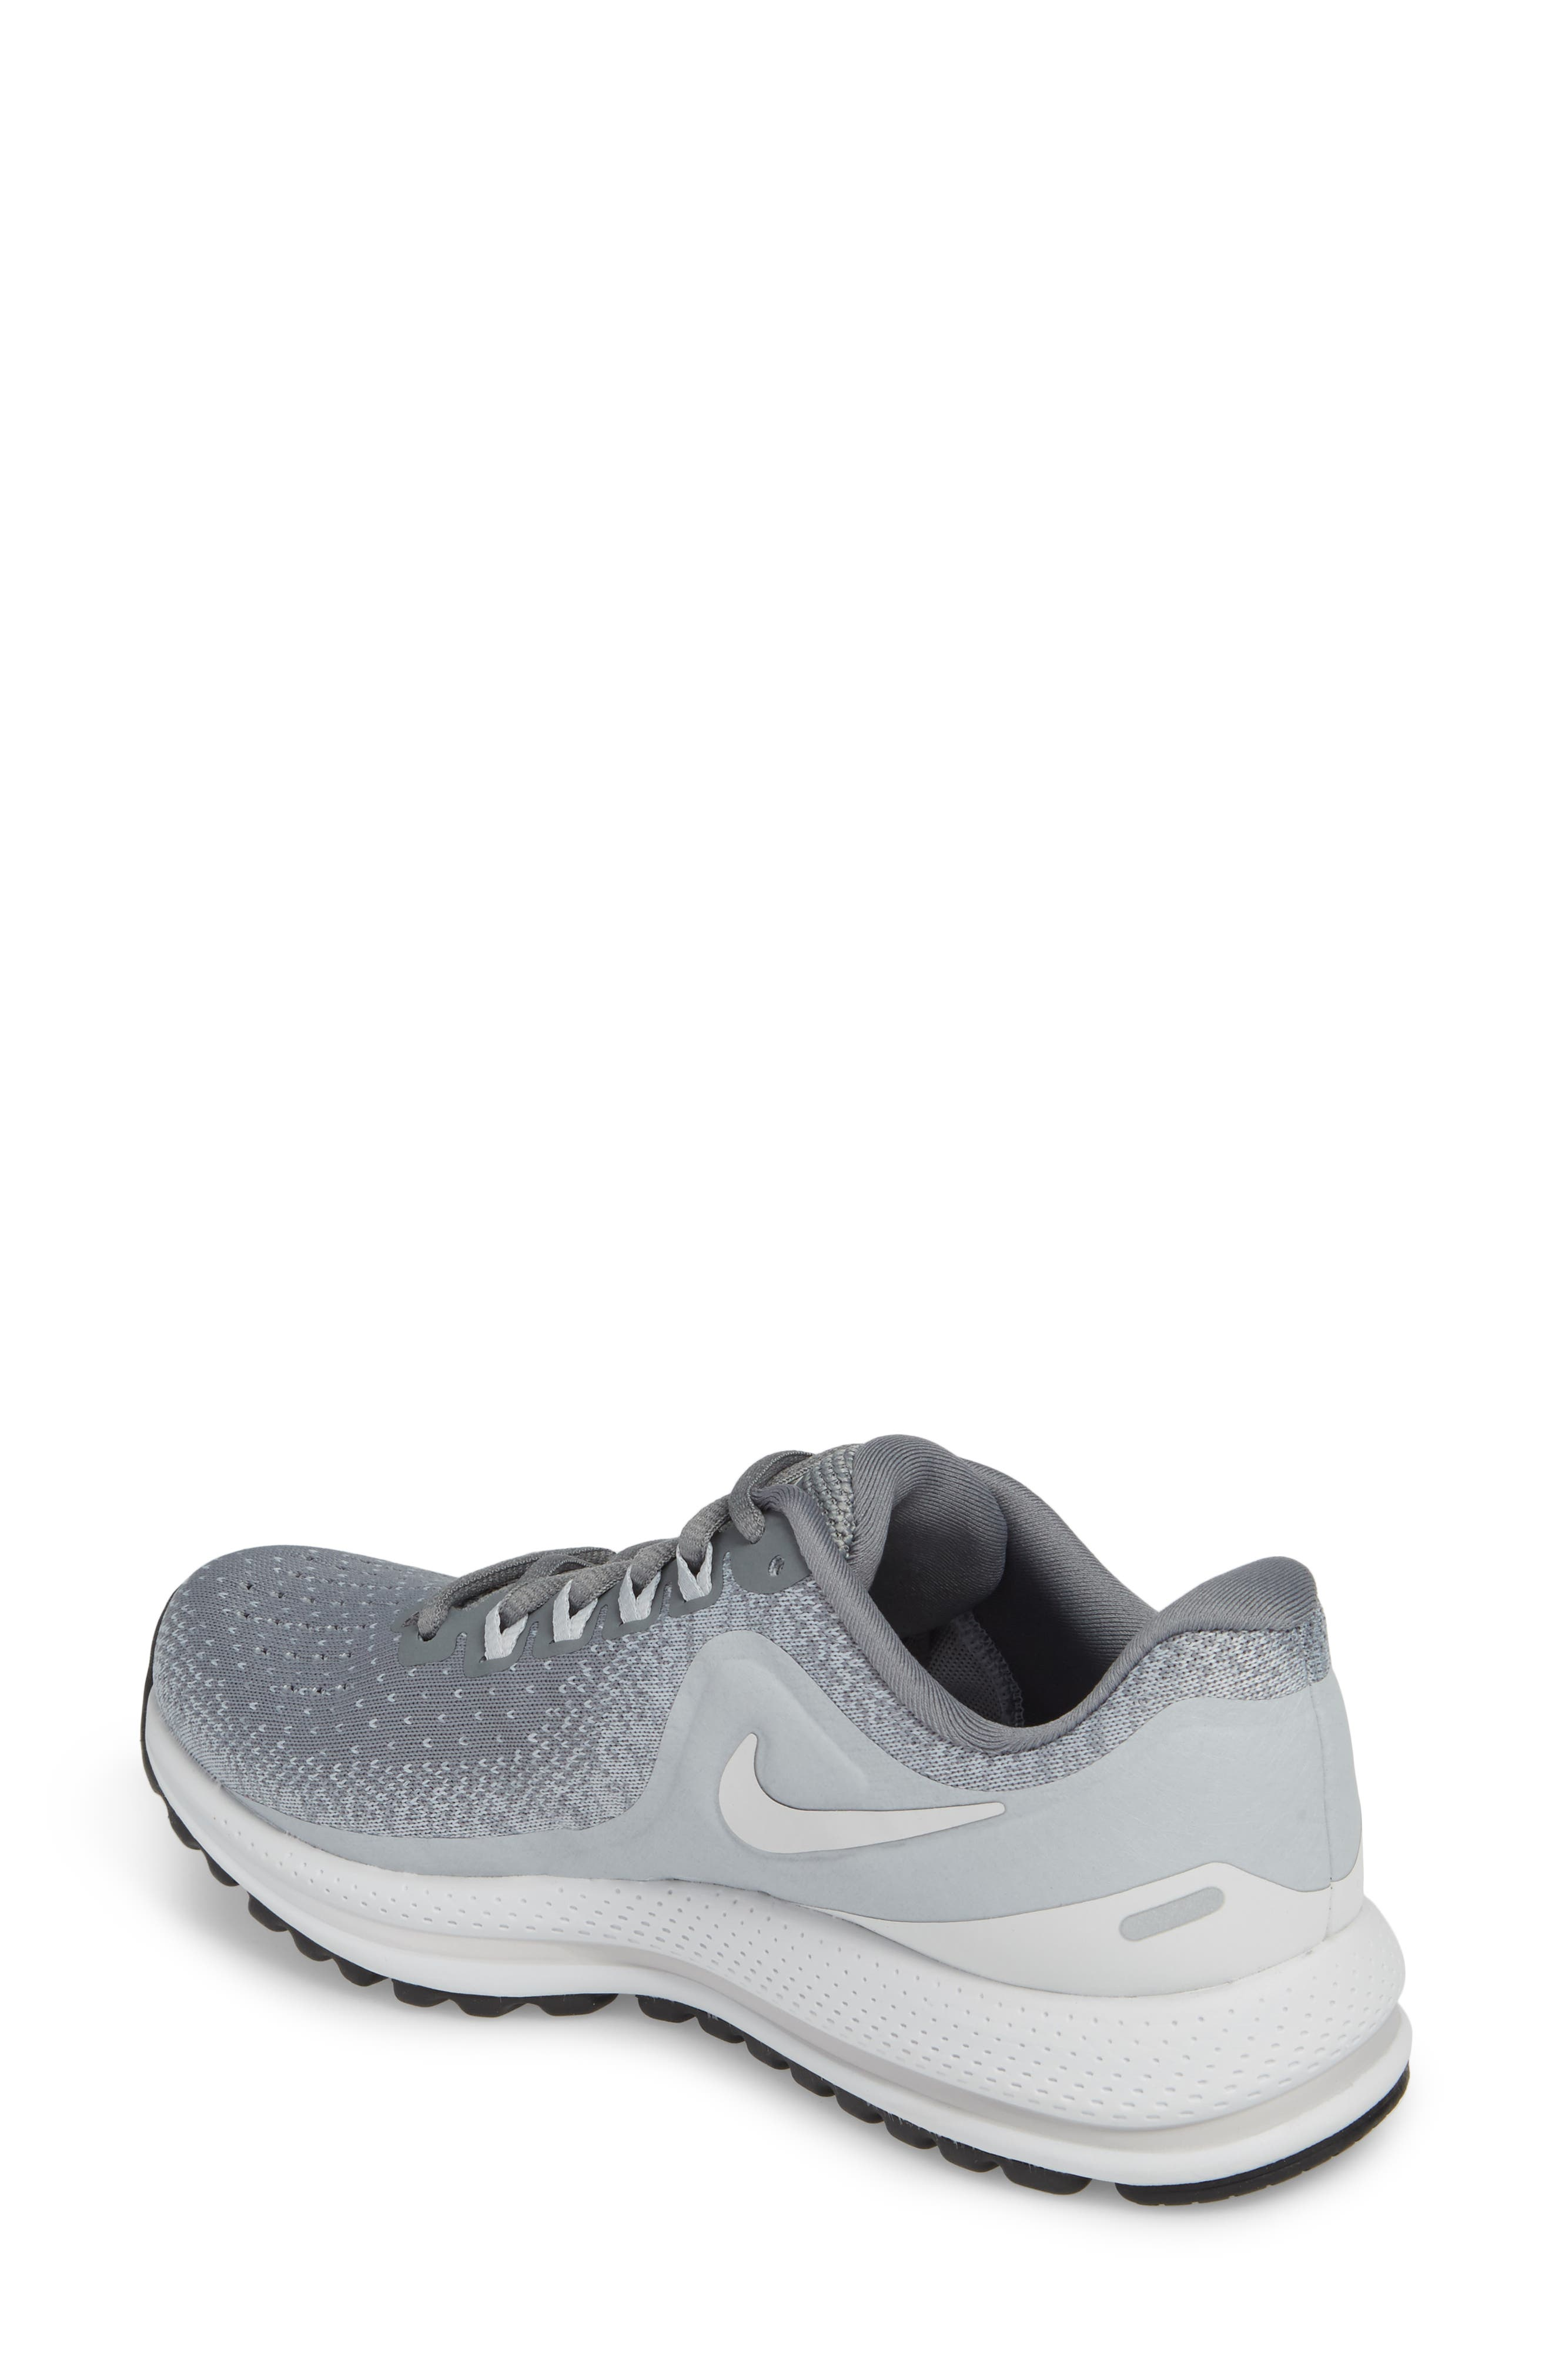 Air Zoom Vomero 13 Running Shoe,                             Alternate thumbnail 2, color,                             023